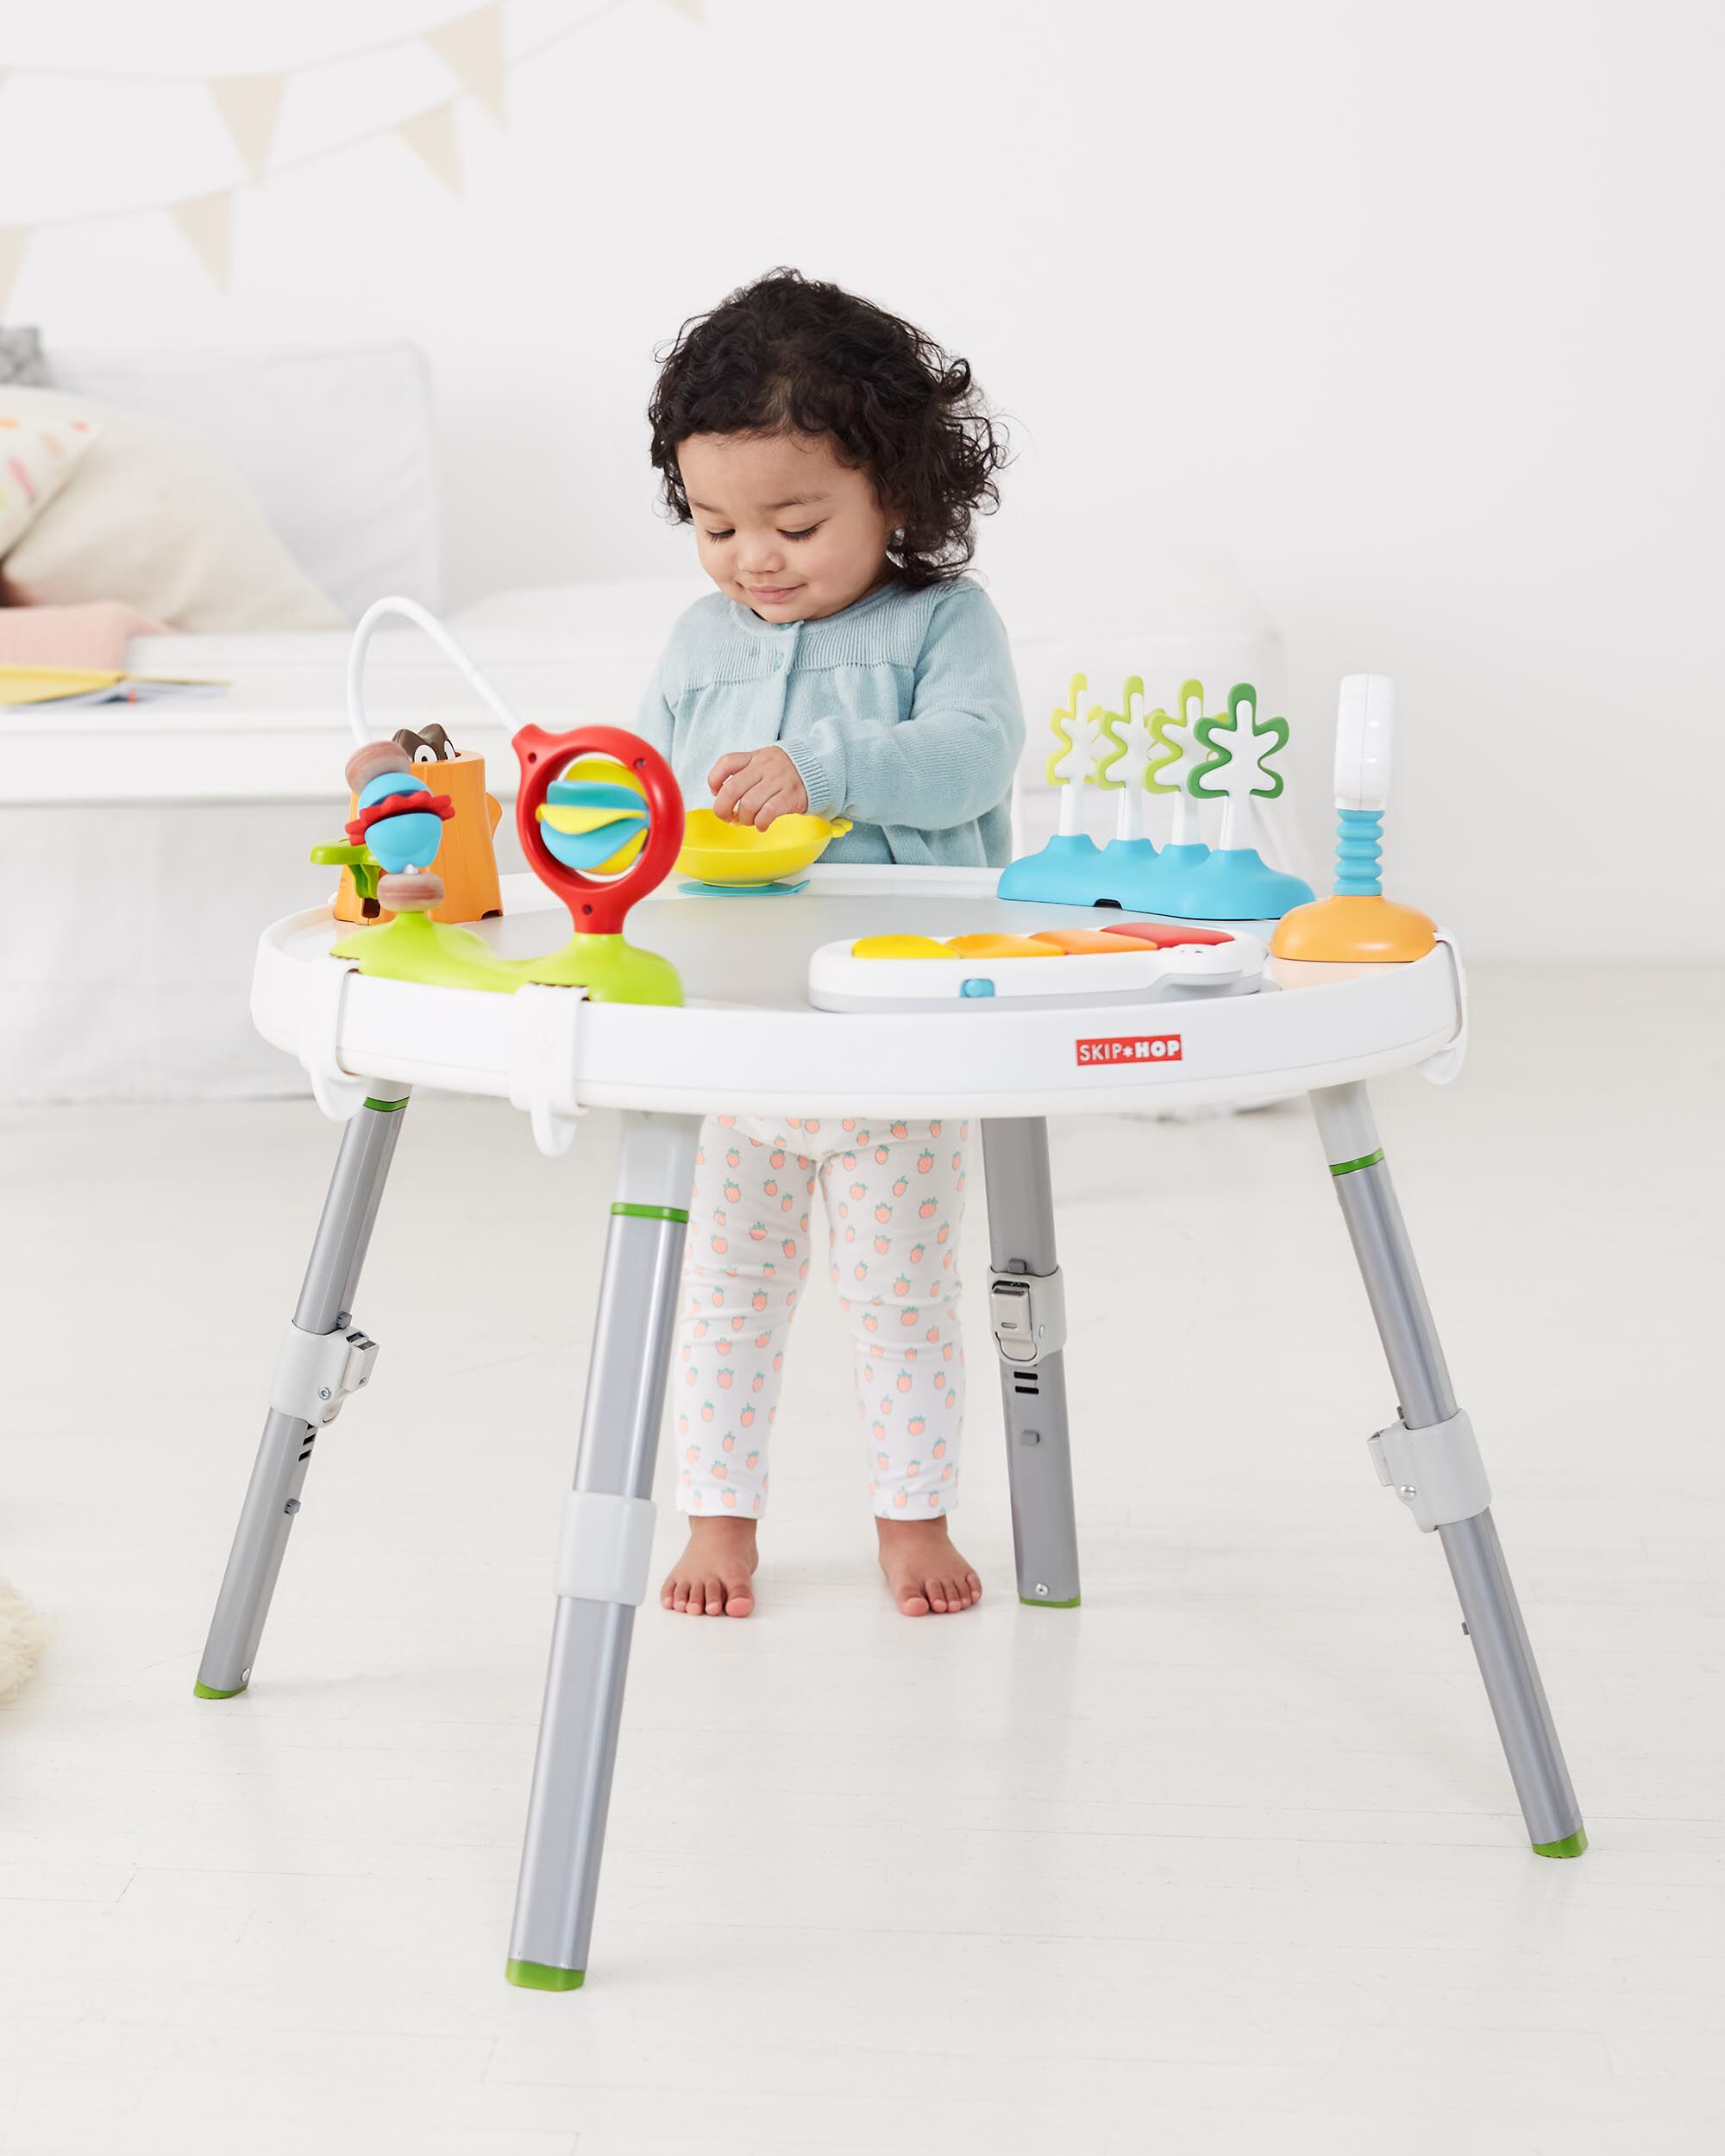 revolving chair for baby folding chairs in spanish explore and more 39s view 3 stage activity center